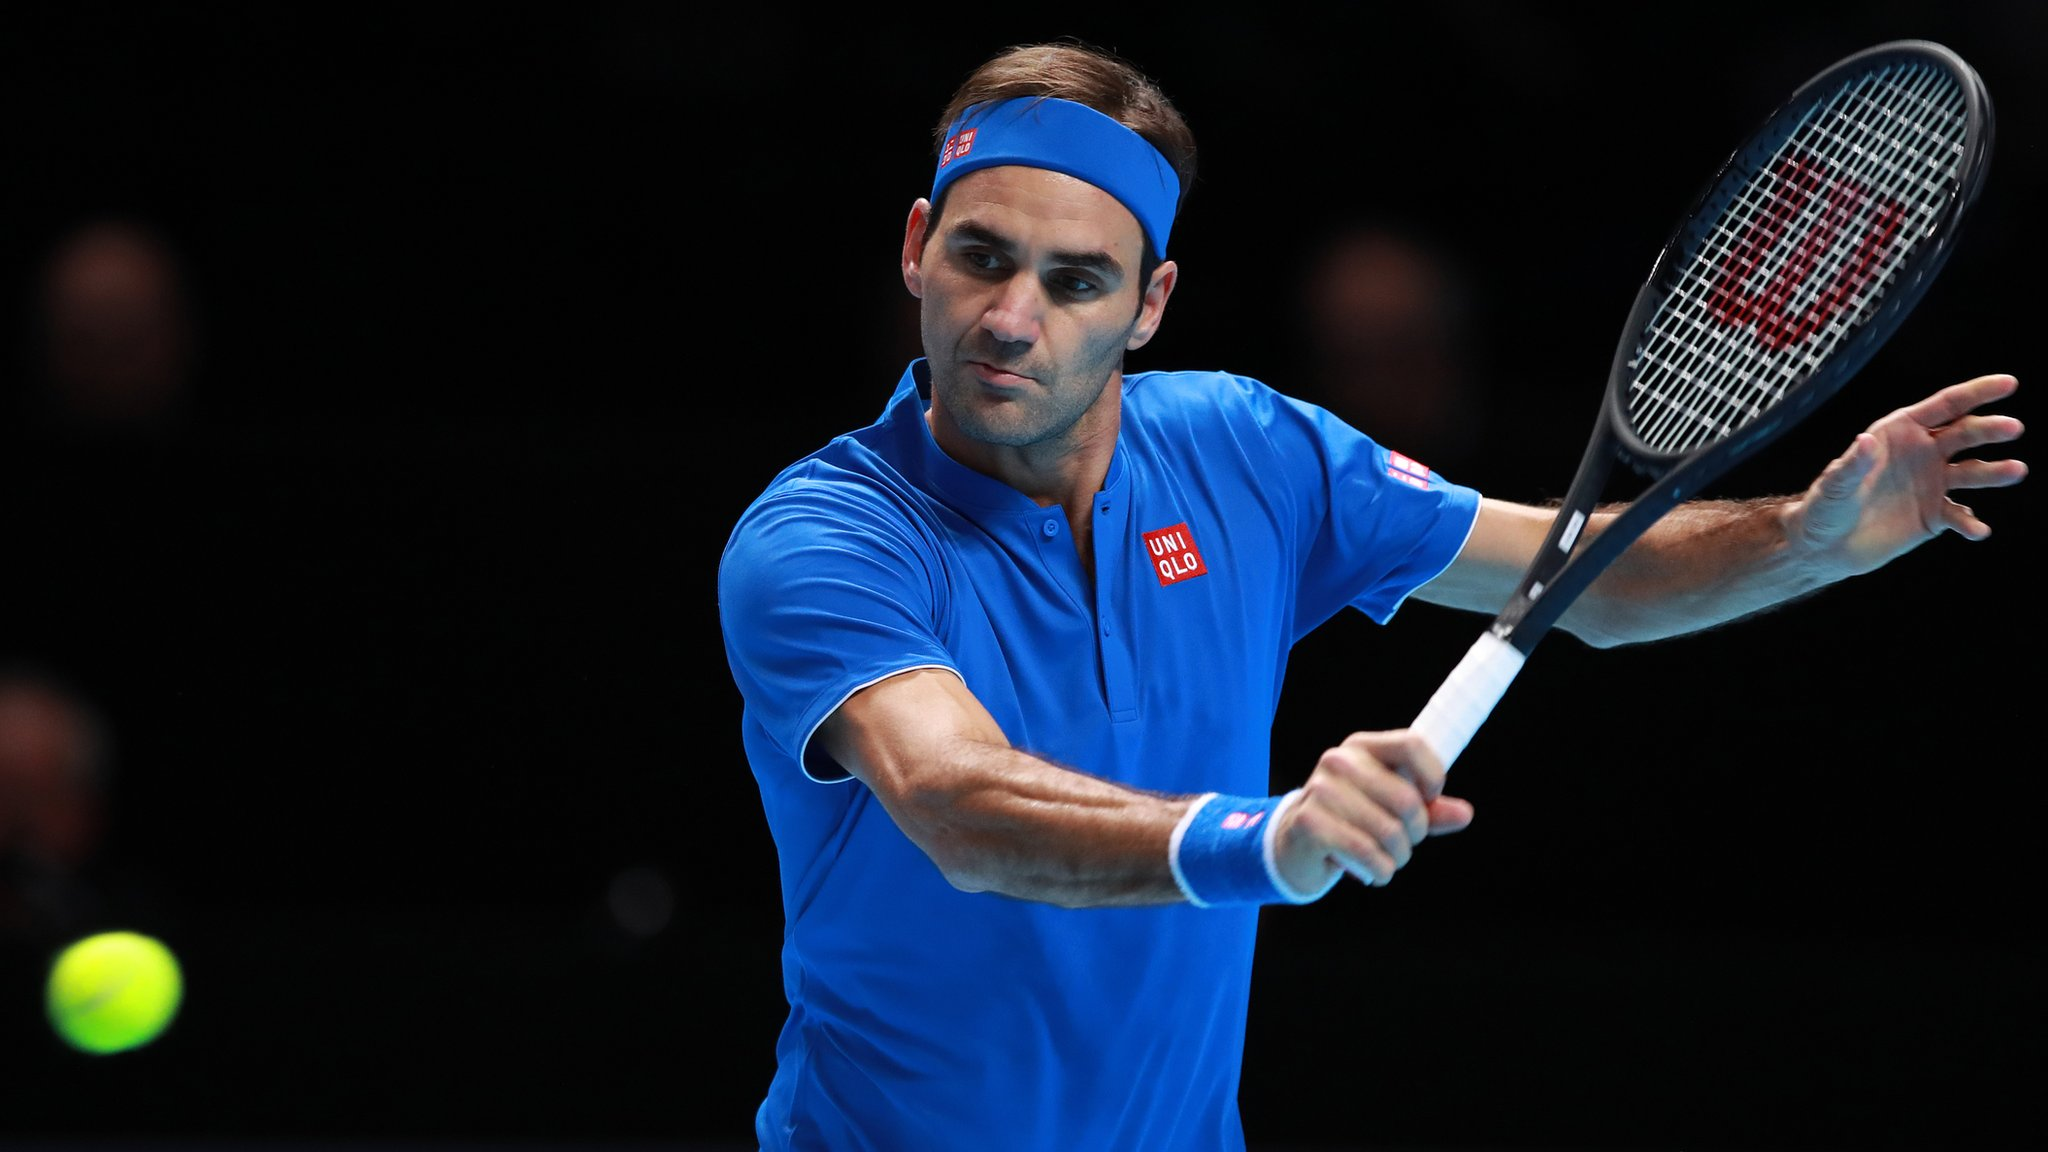 What does Federer need to do to reach London semi-finals?